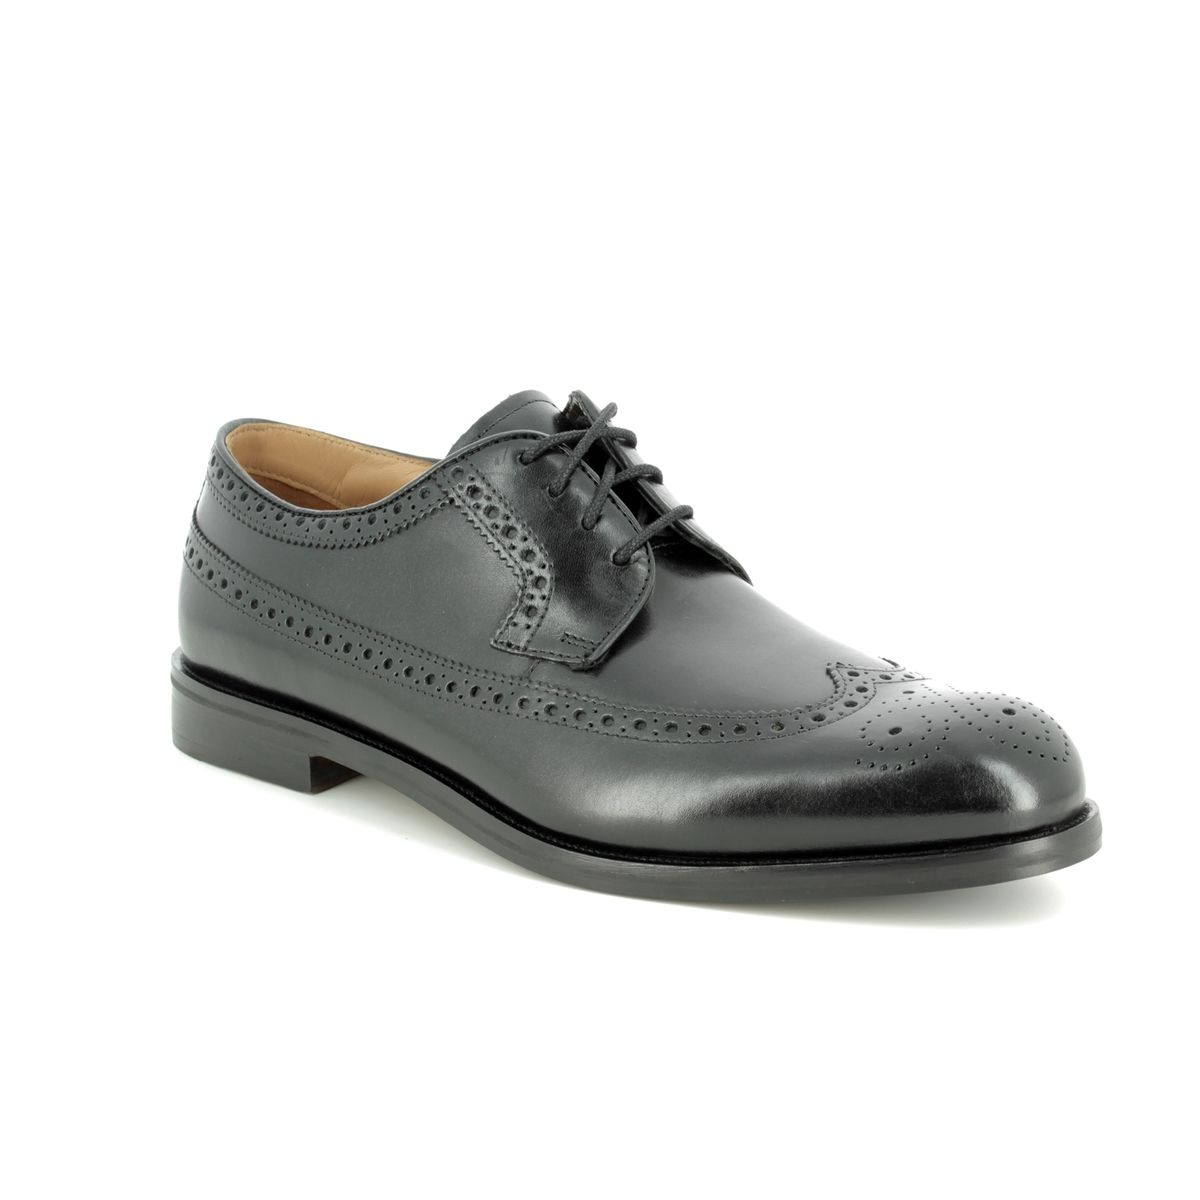 e7eee642c8 Clarks Brogues - Black leather - 193768H COLING LIMIT